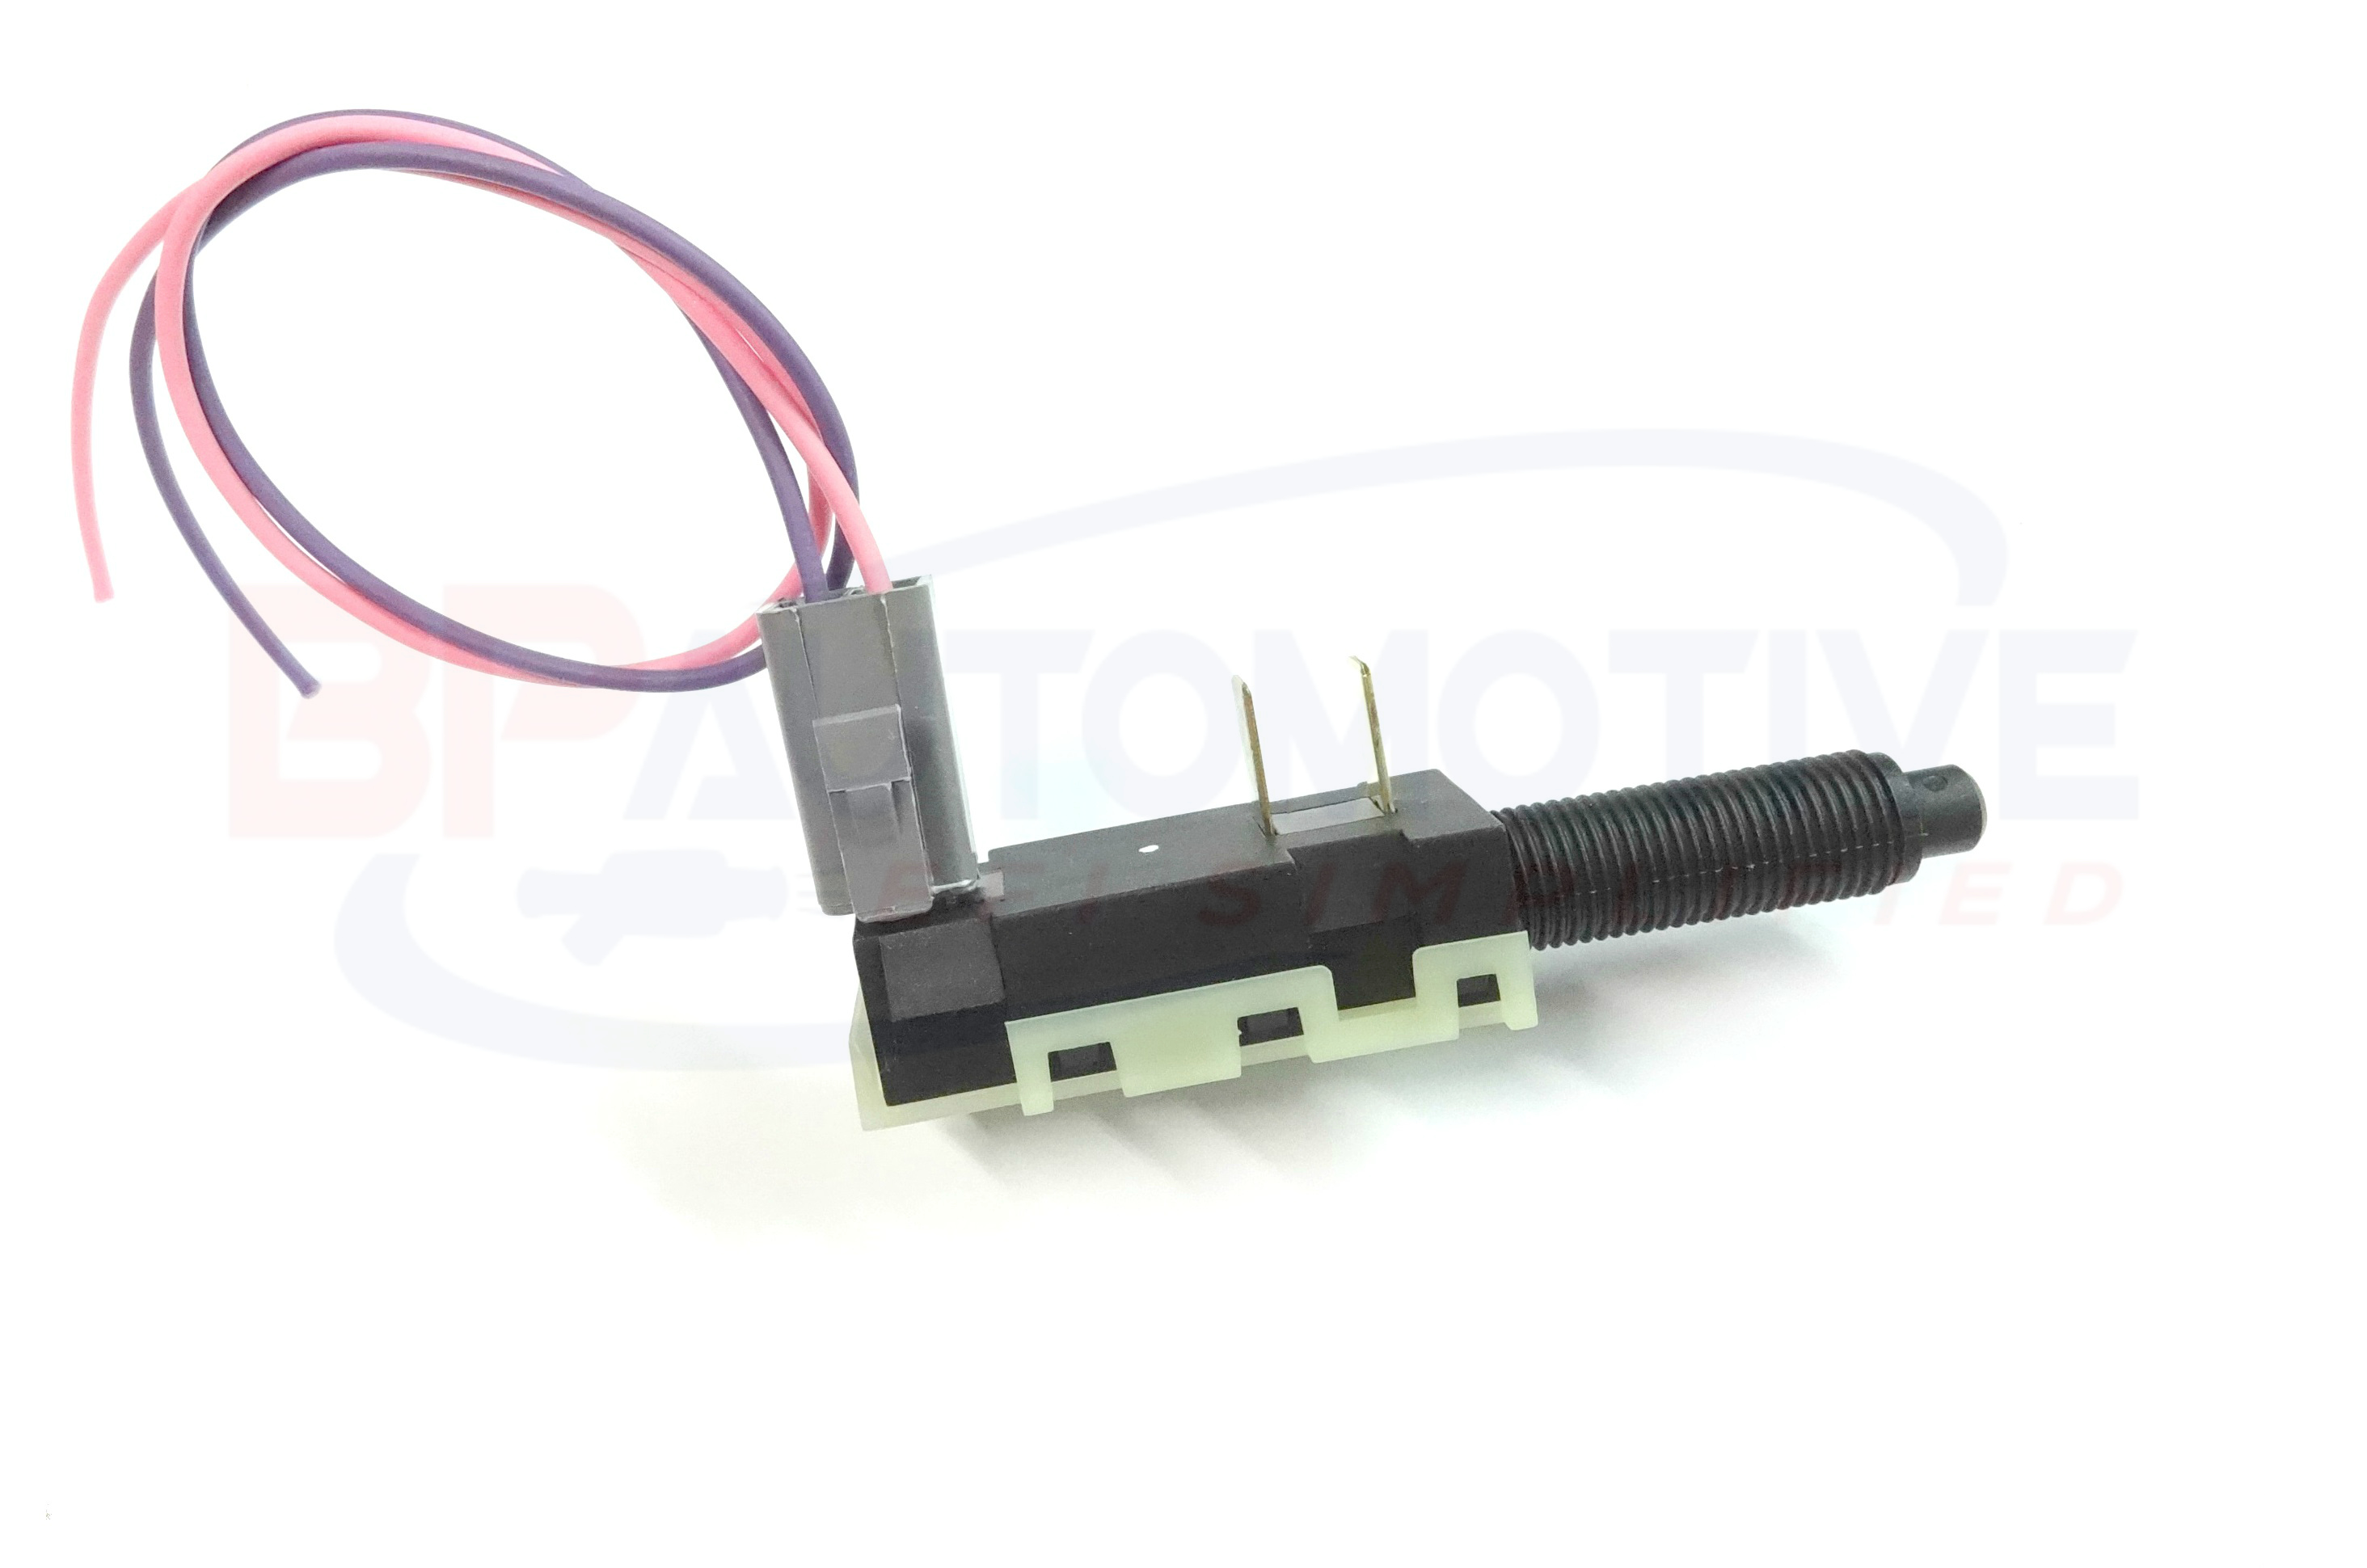 Electronic Overdrive Transmission Brake Switch